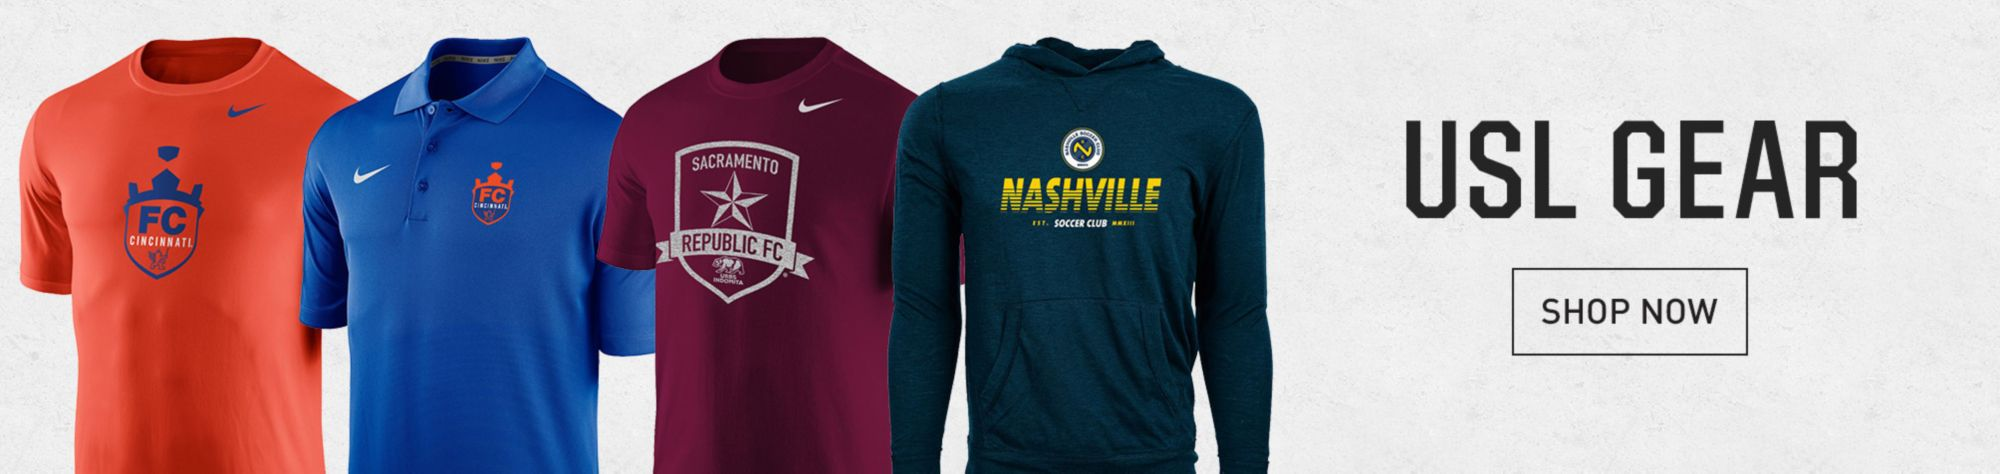 2018 USL Gear - Shop Now